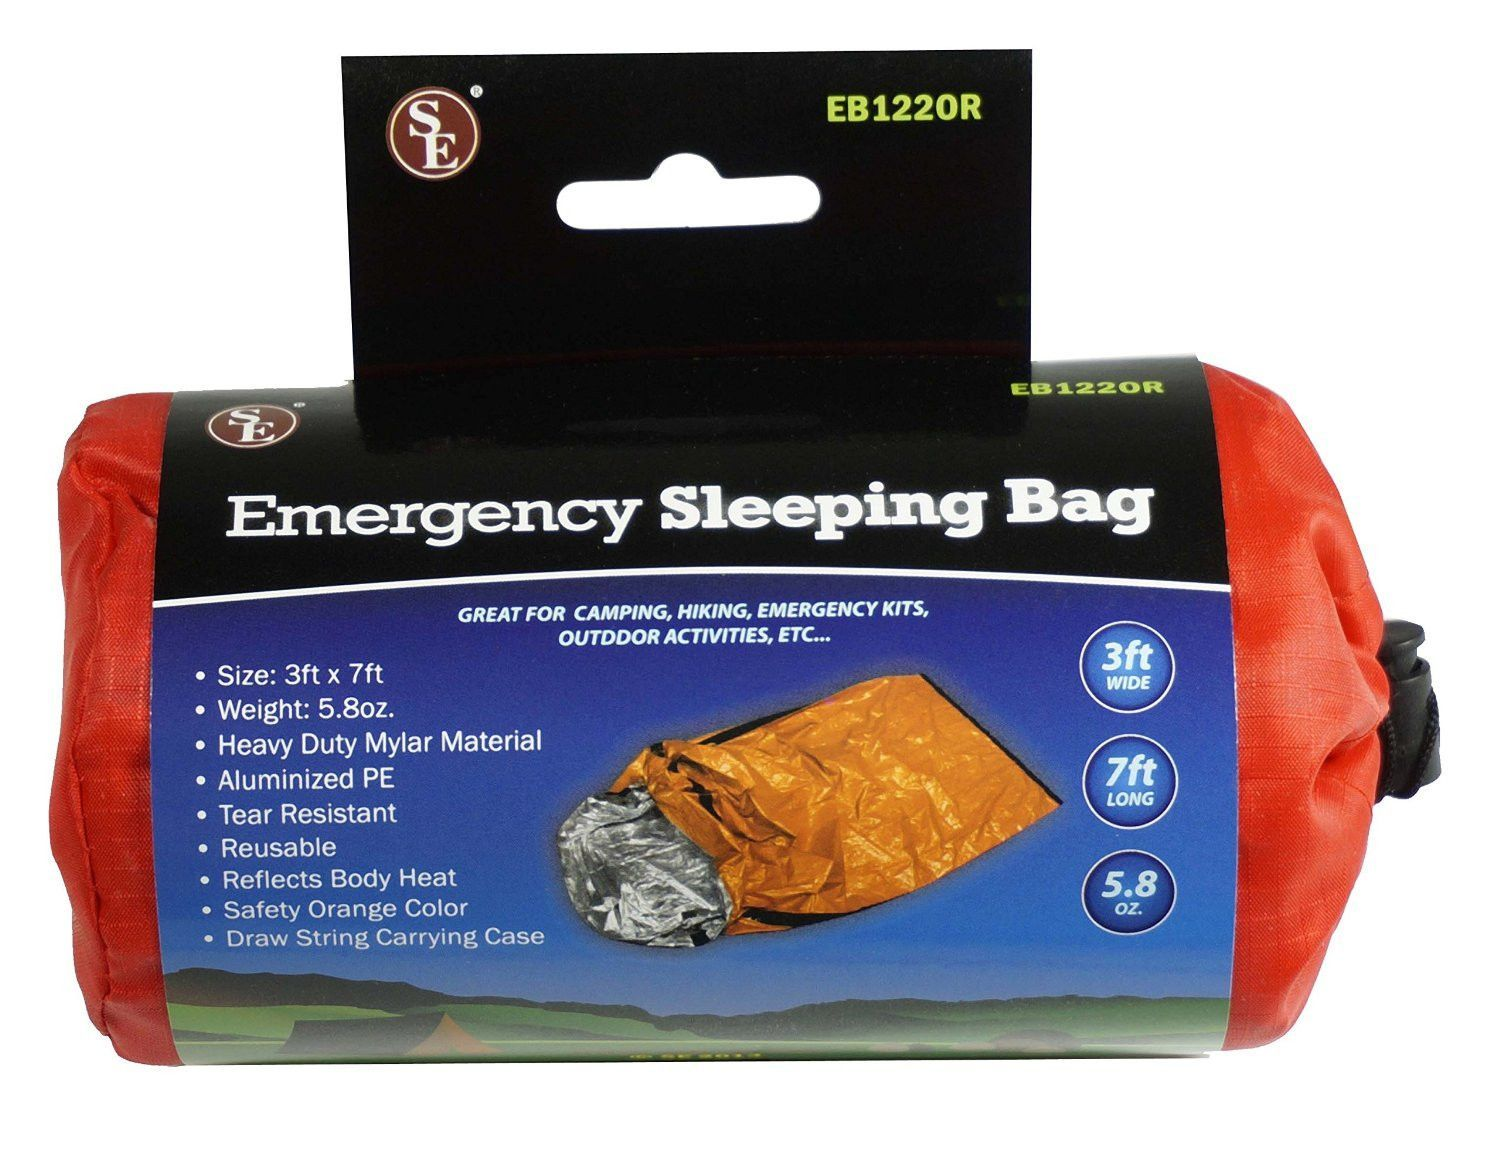 Emergency Sleeping Bag With Drawstring Carrying Camping